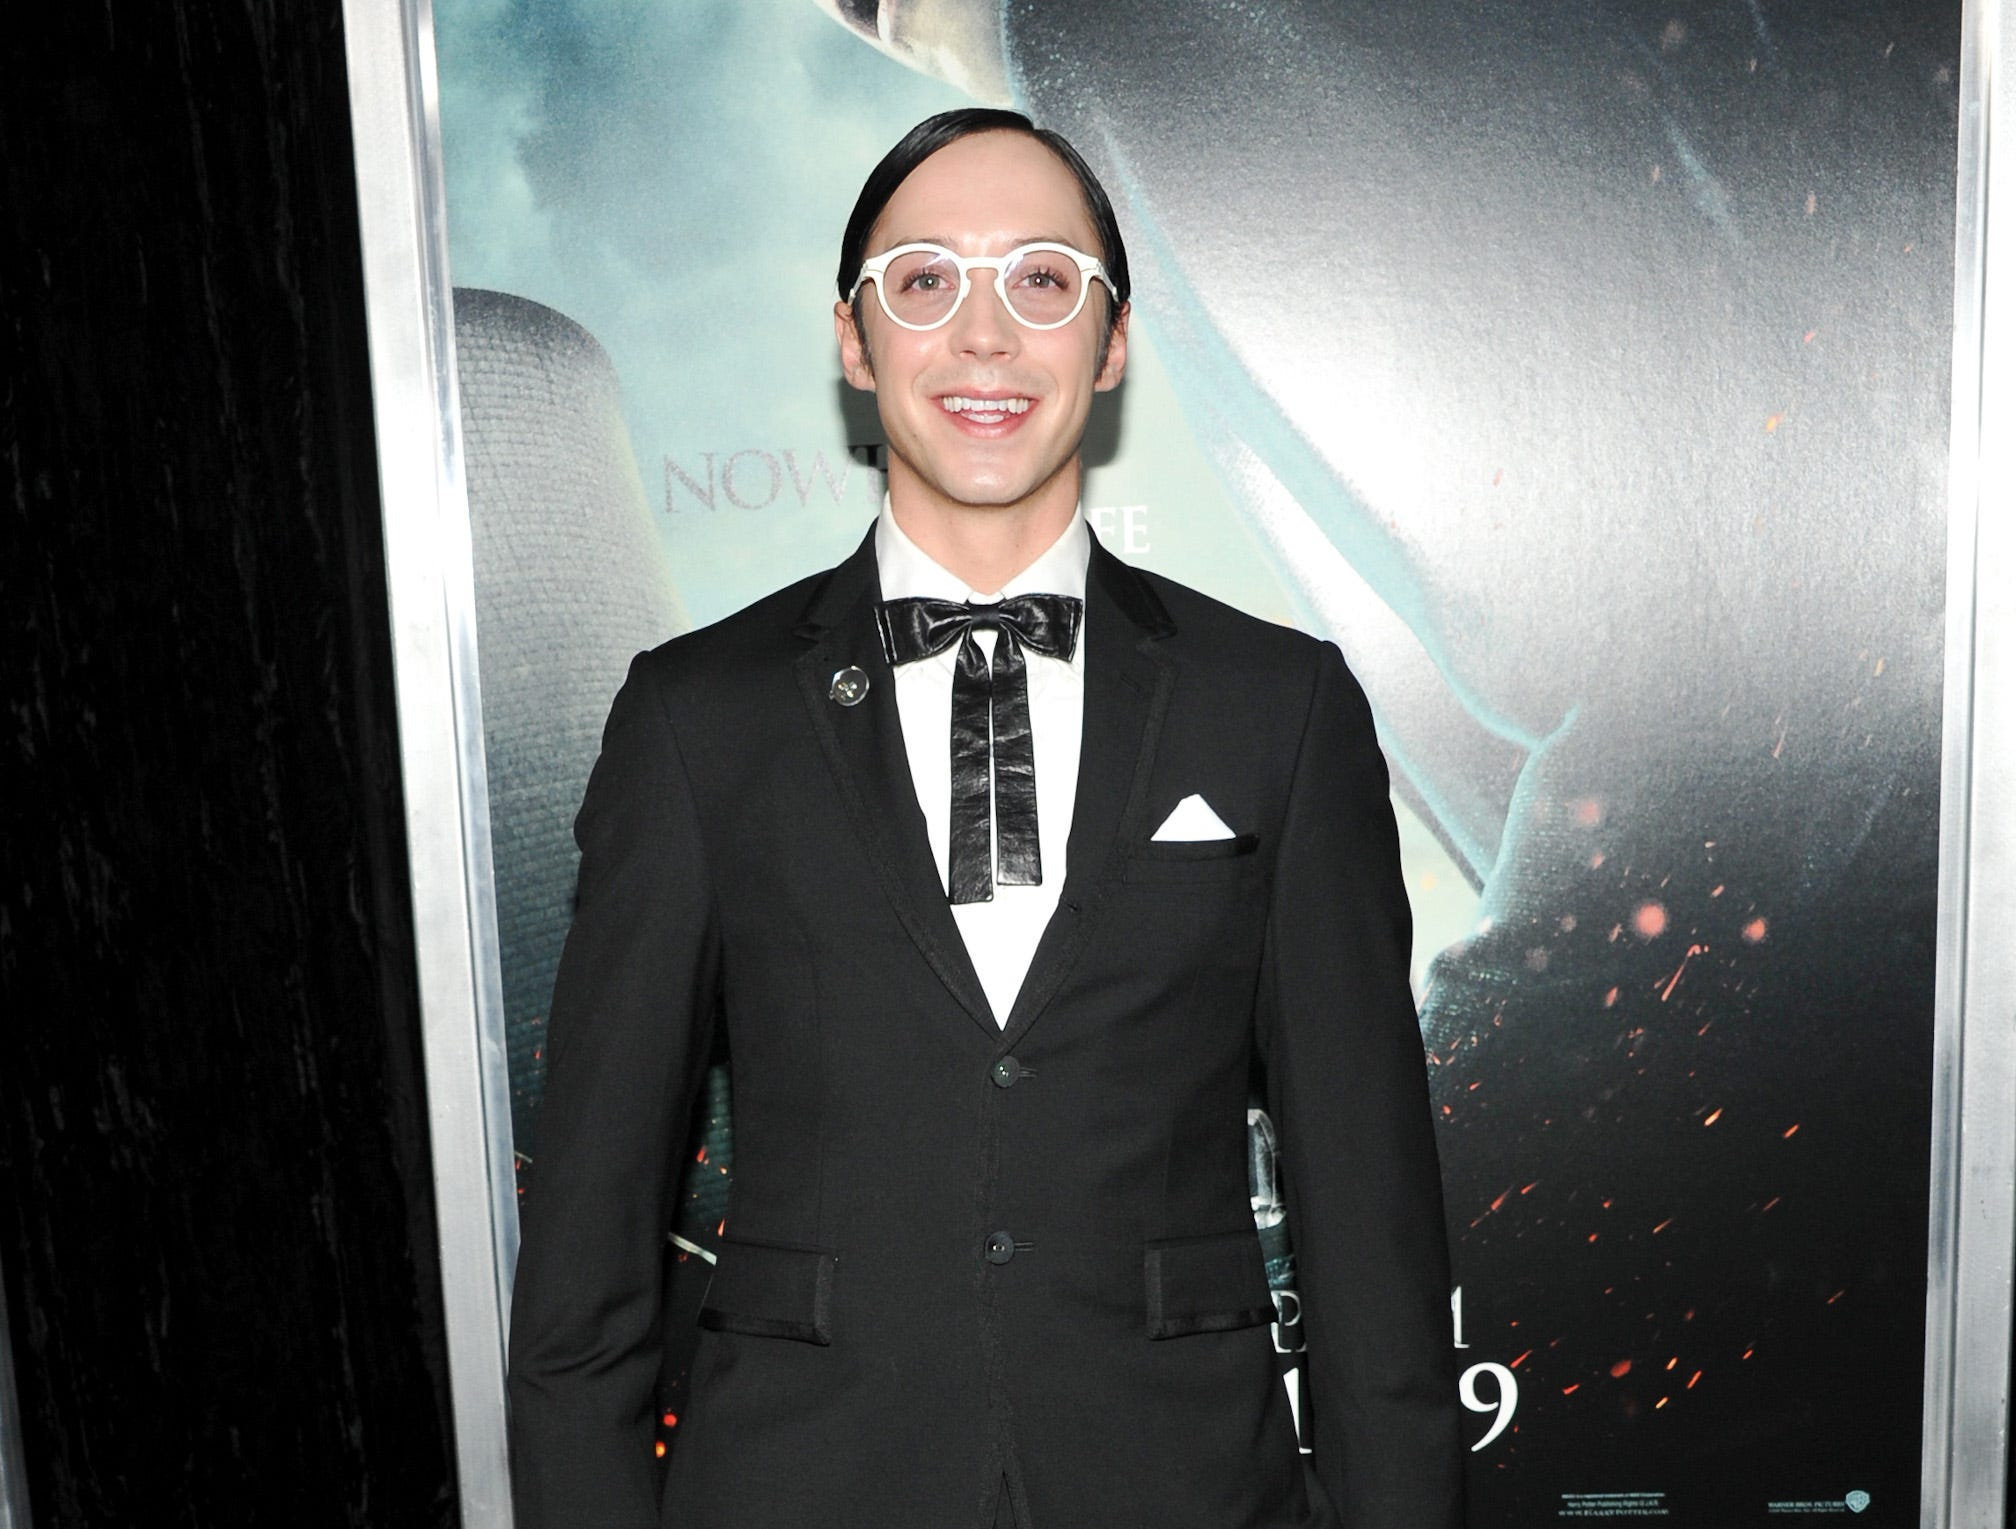 "Figure skater Johnny Weir attends the premiere of ""Harry Potter and the Deathly Hallows Part 1"" at Alice Tully Hall on Monday, Nov. 15, 2010 in New York."